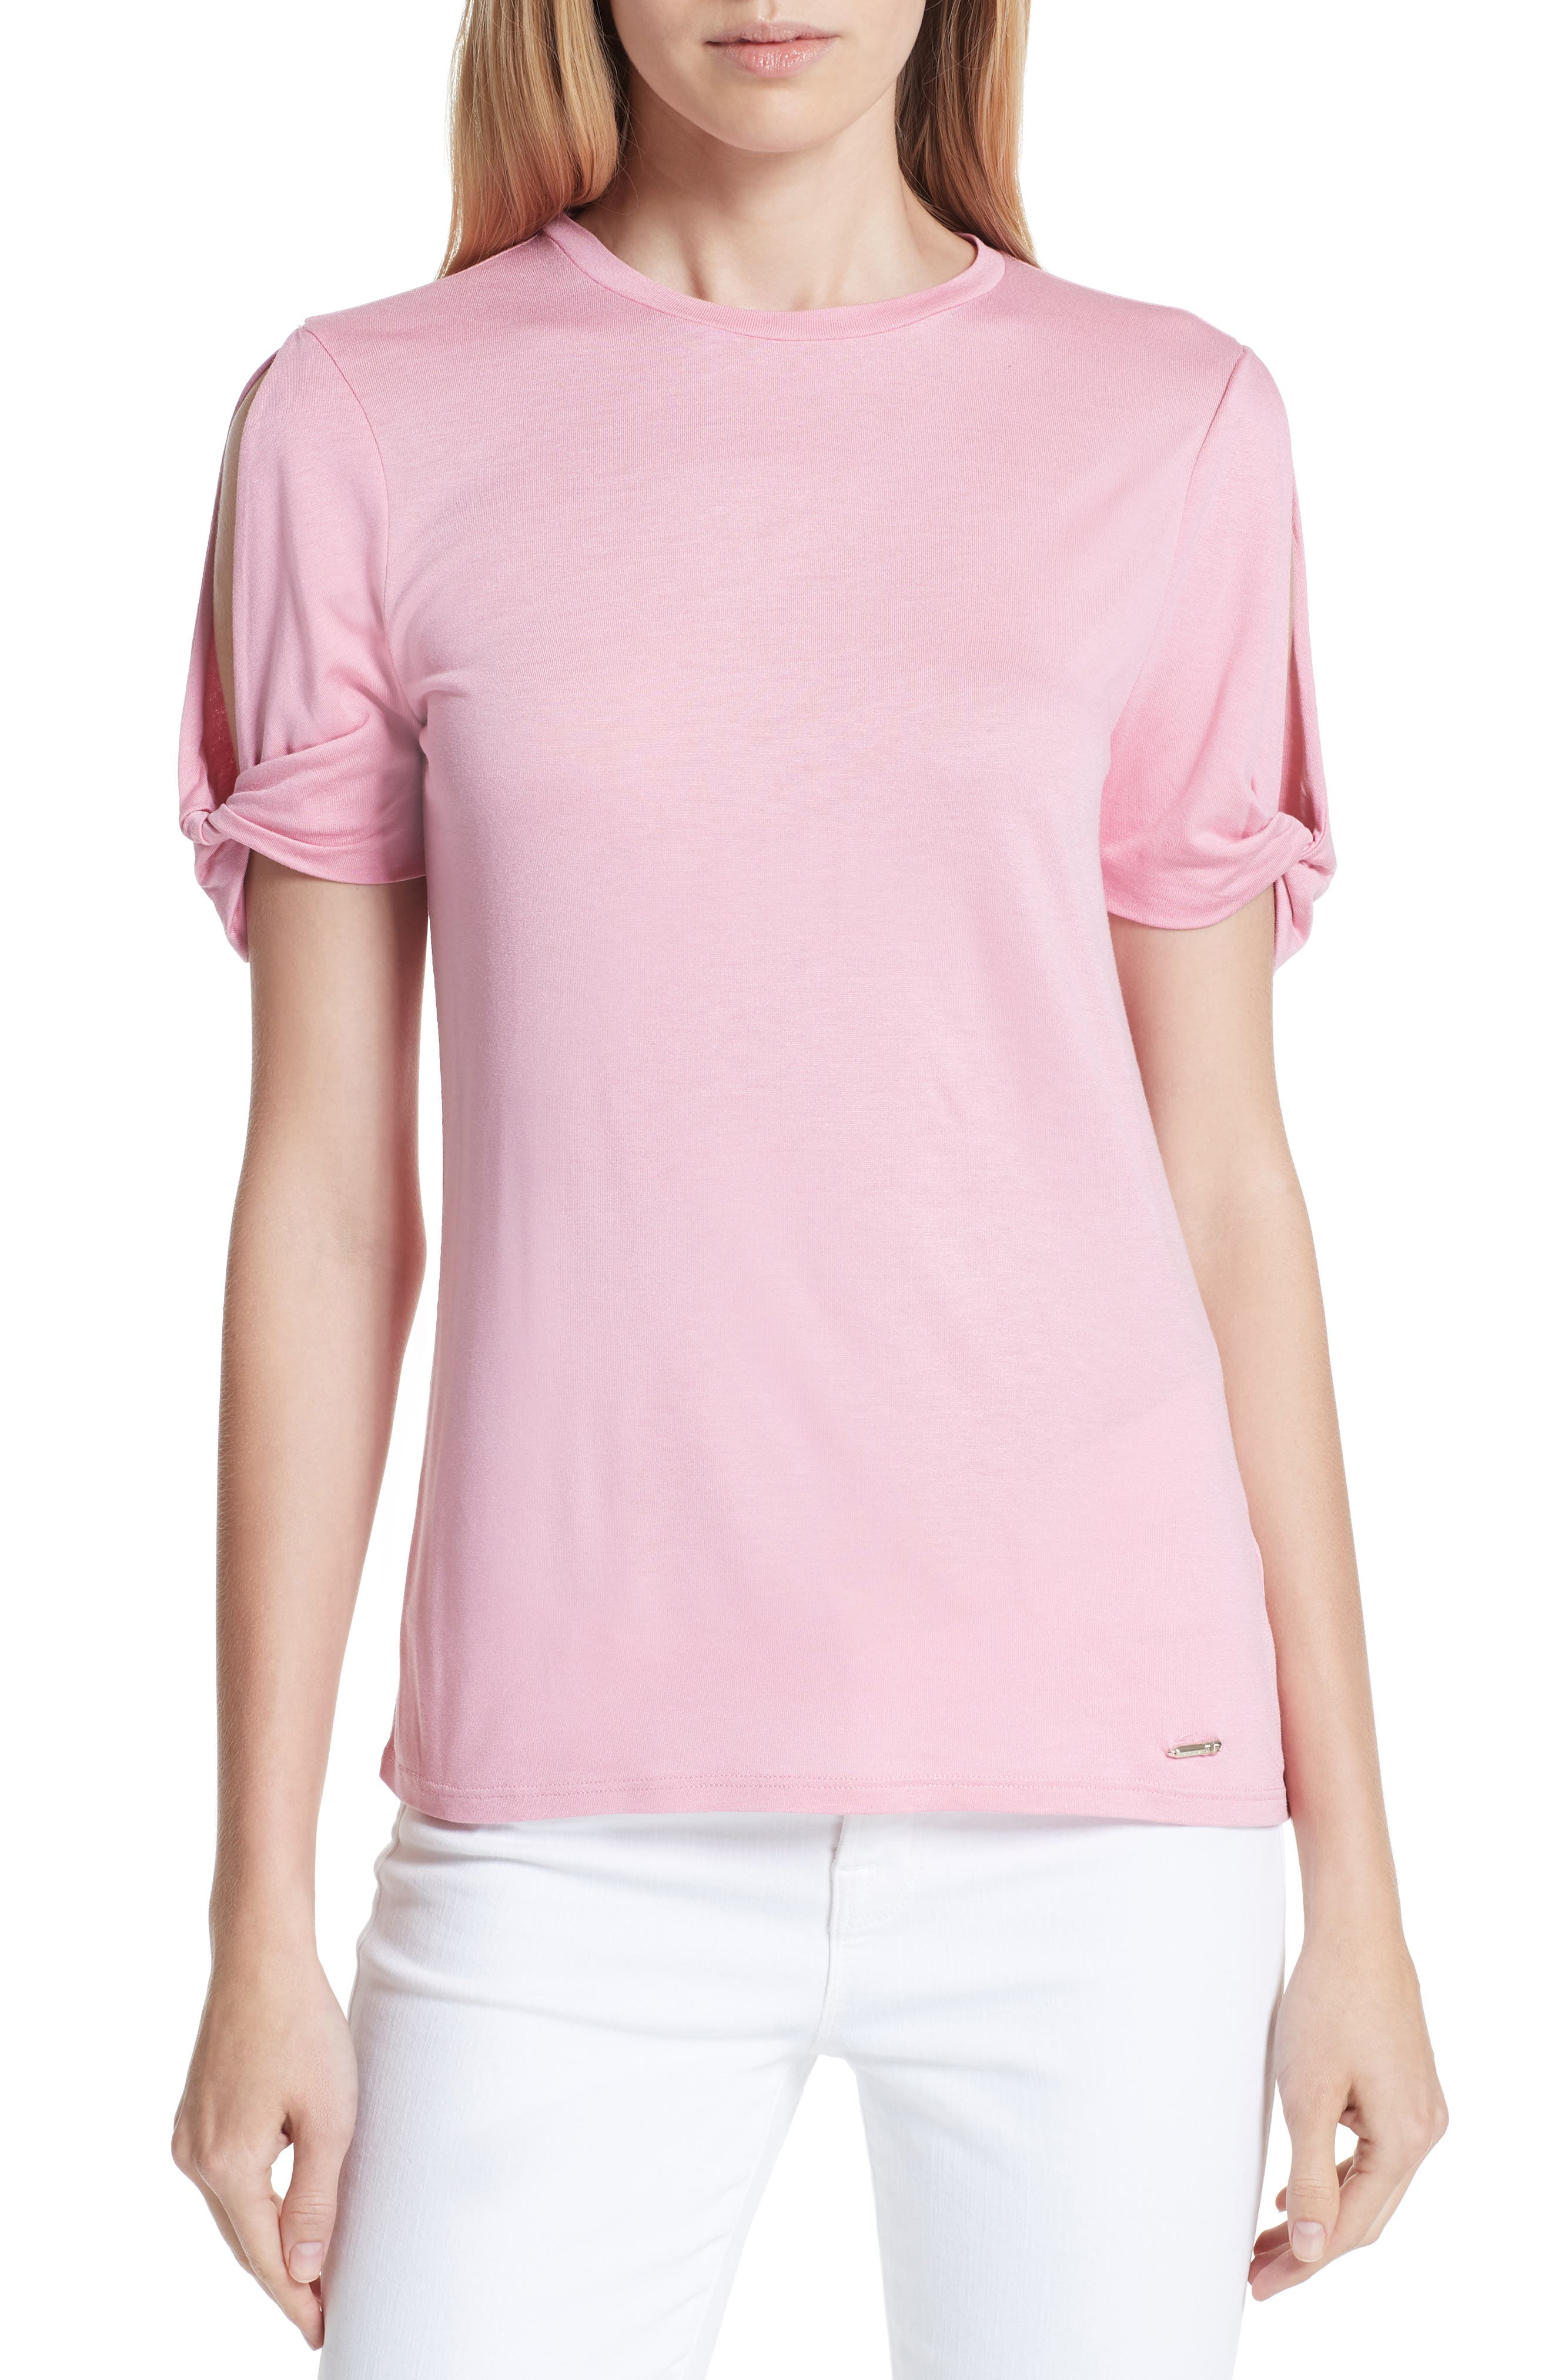 Narva Colour by Numbers Twist Cuff Shirt,                             Main thumbnail 1, color,                             Pink